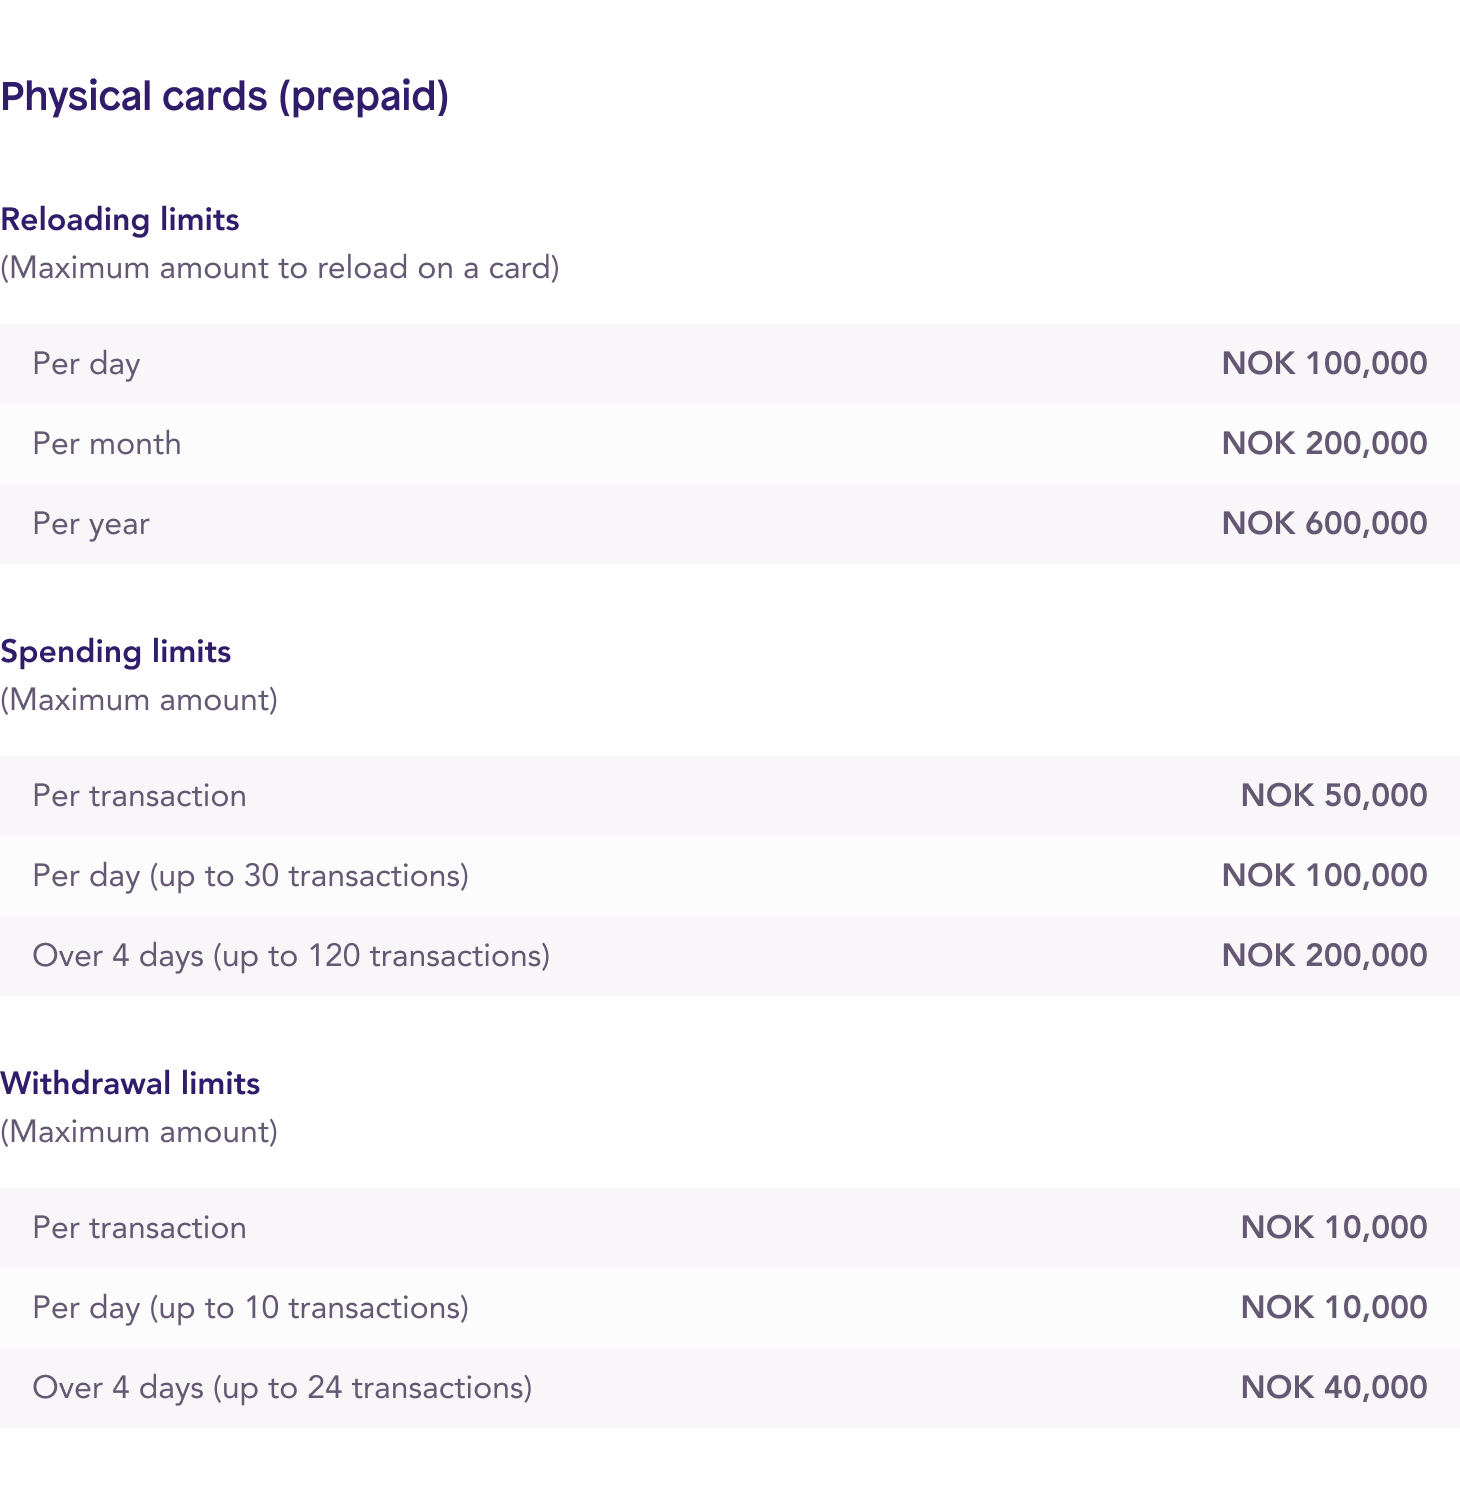 Spendesk physical prepaid cards spending limits